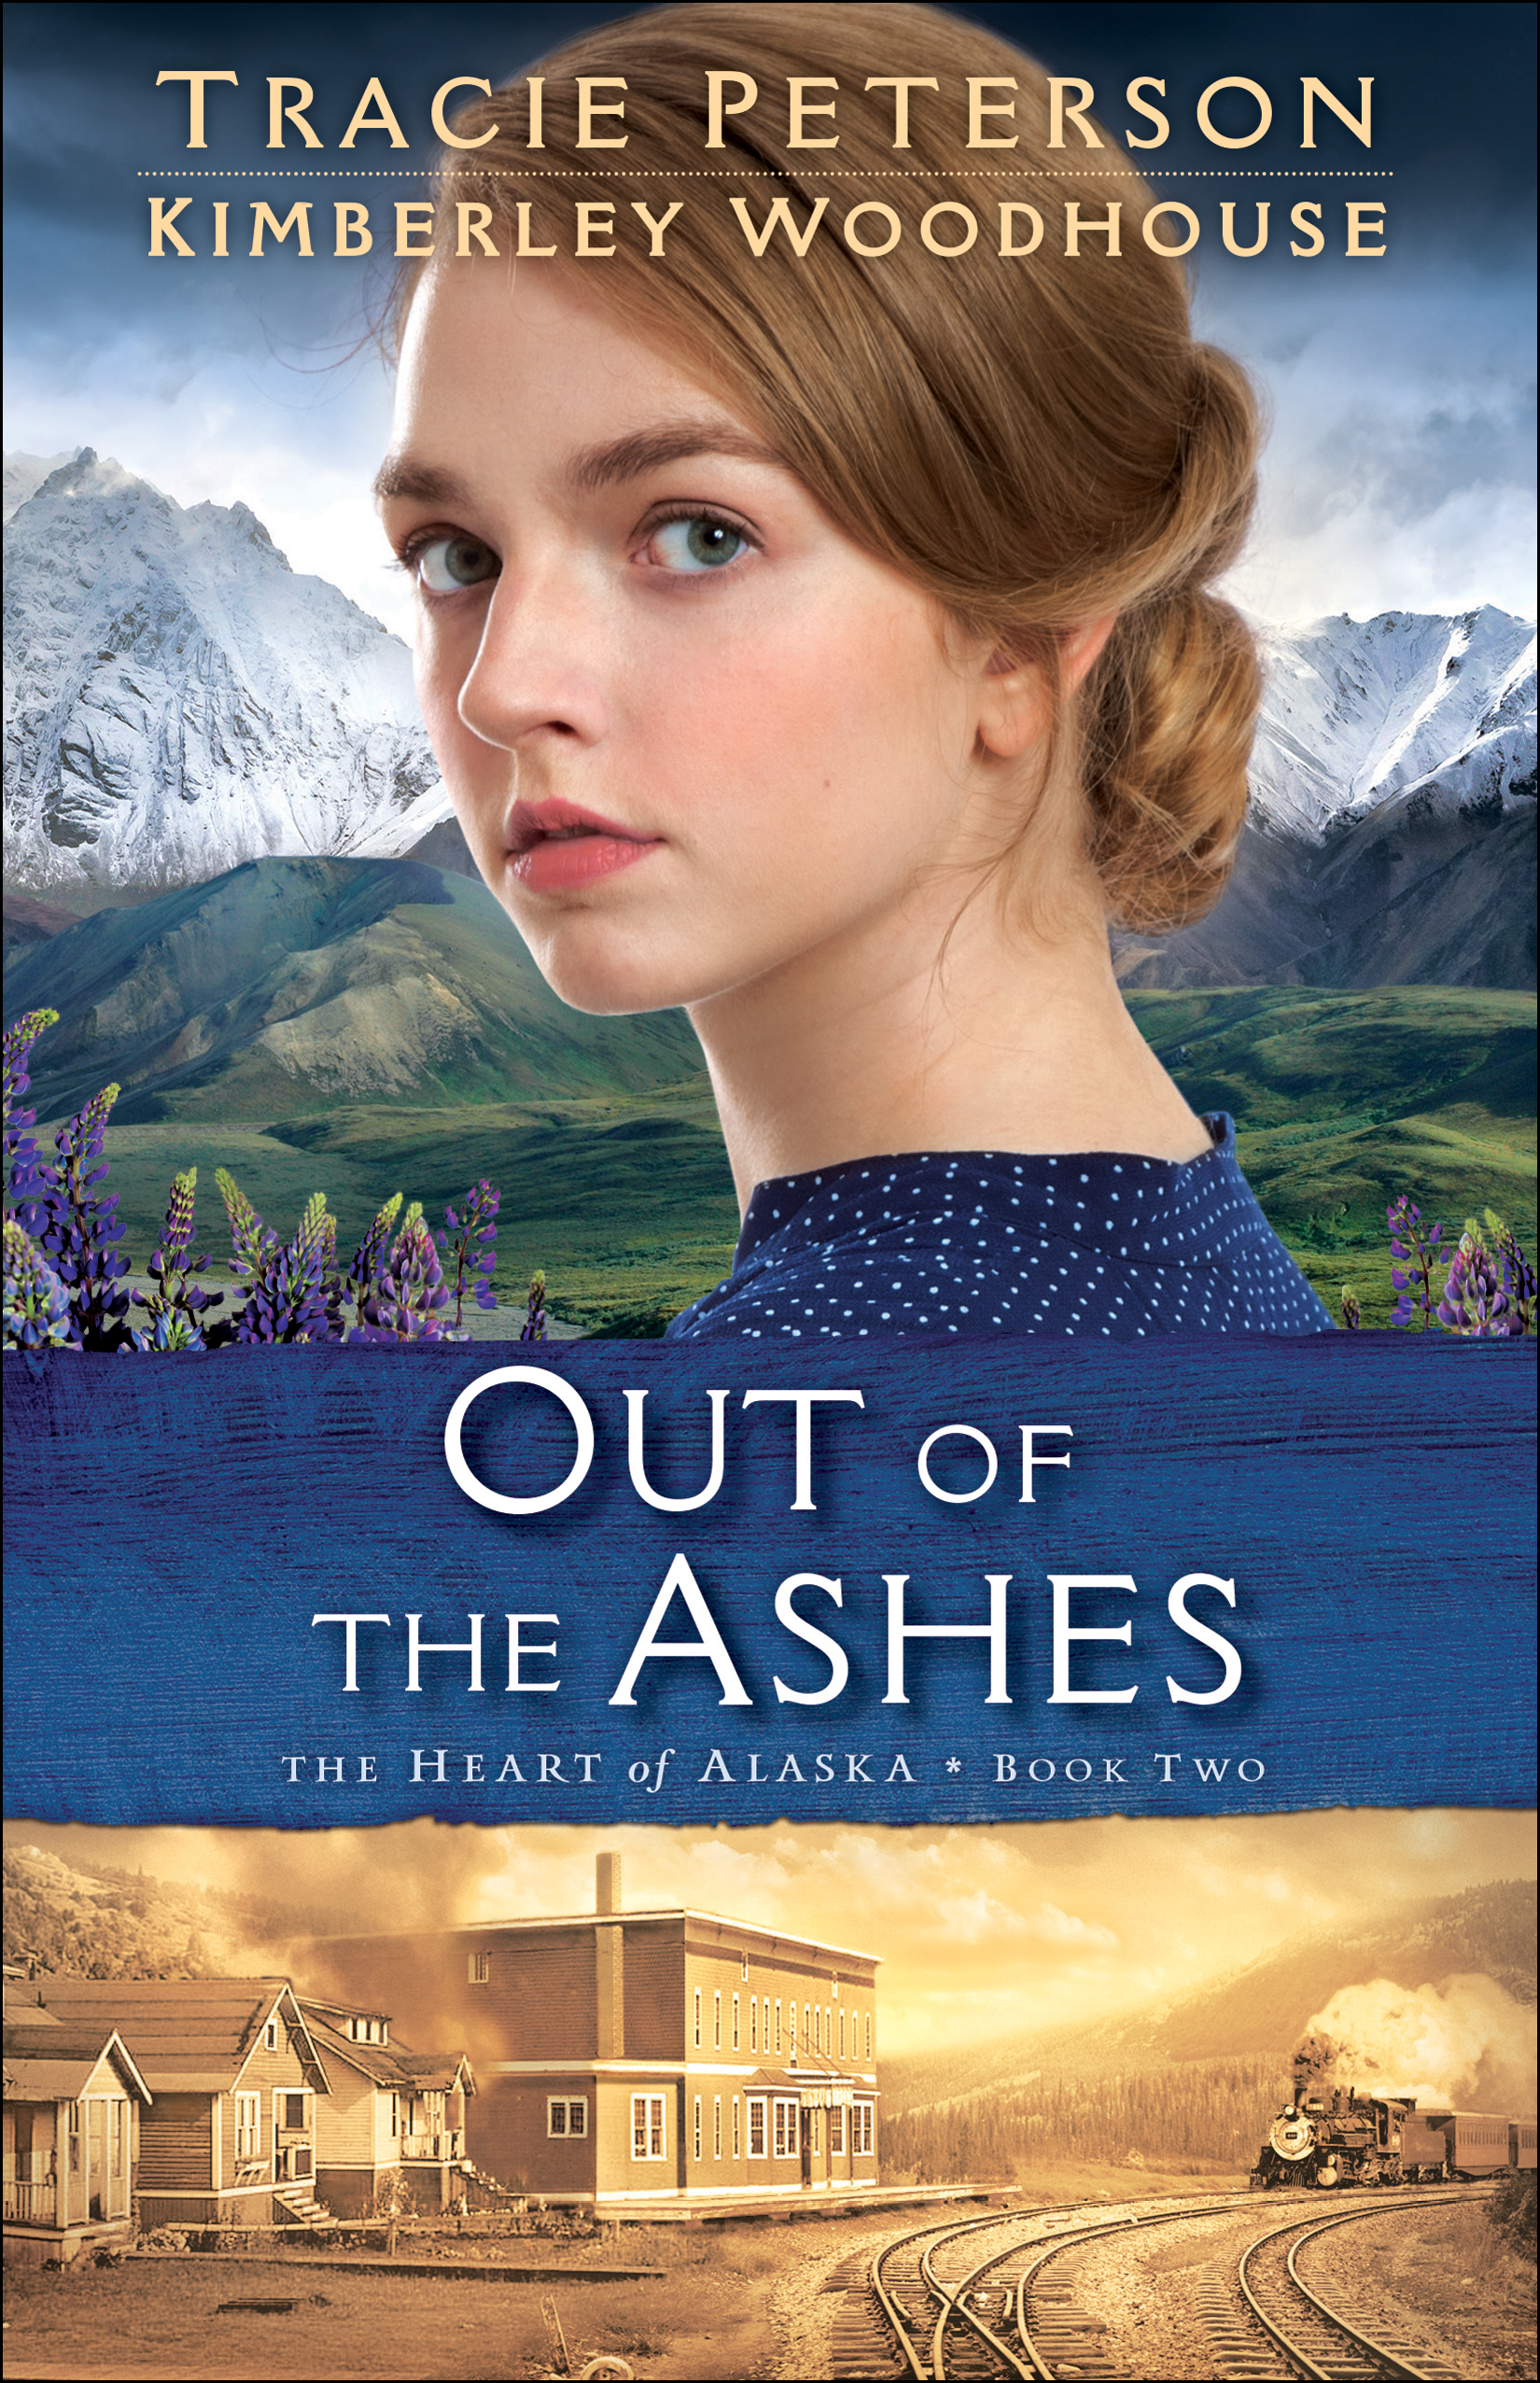 Out of the Ashes (The Heart of Alaska Book #2)